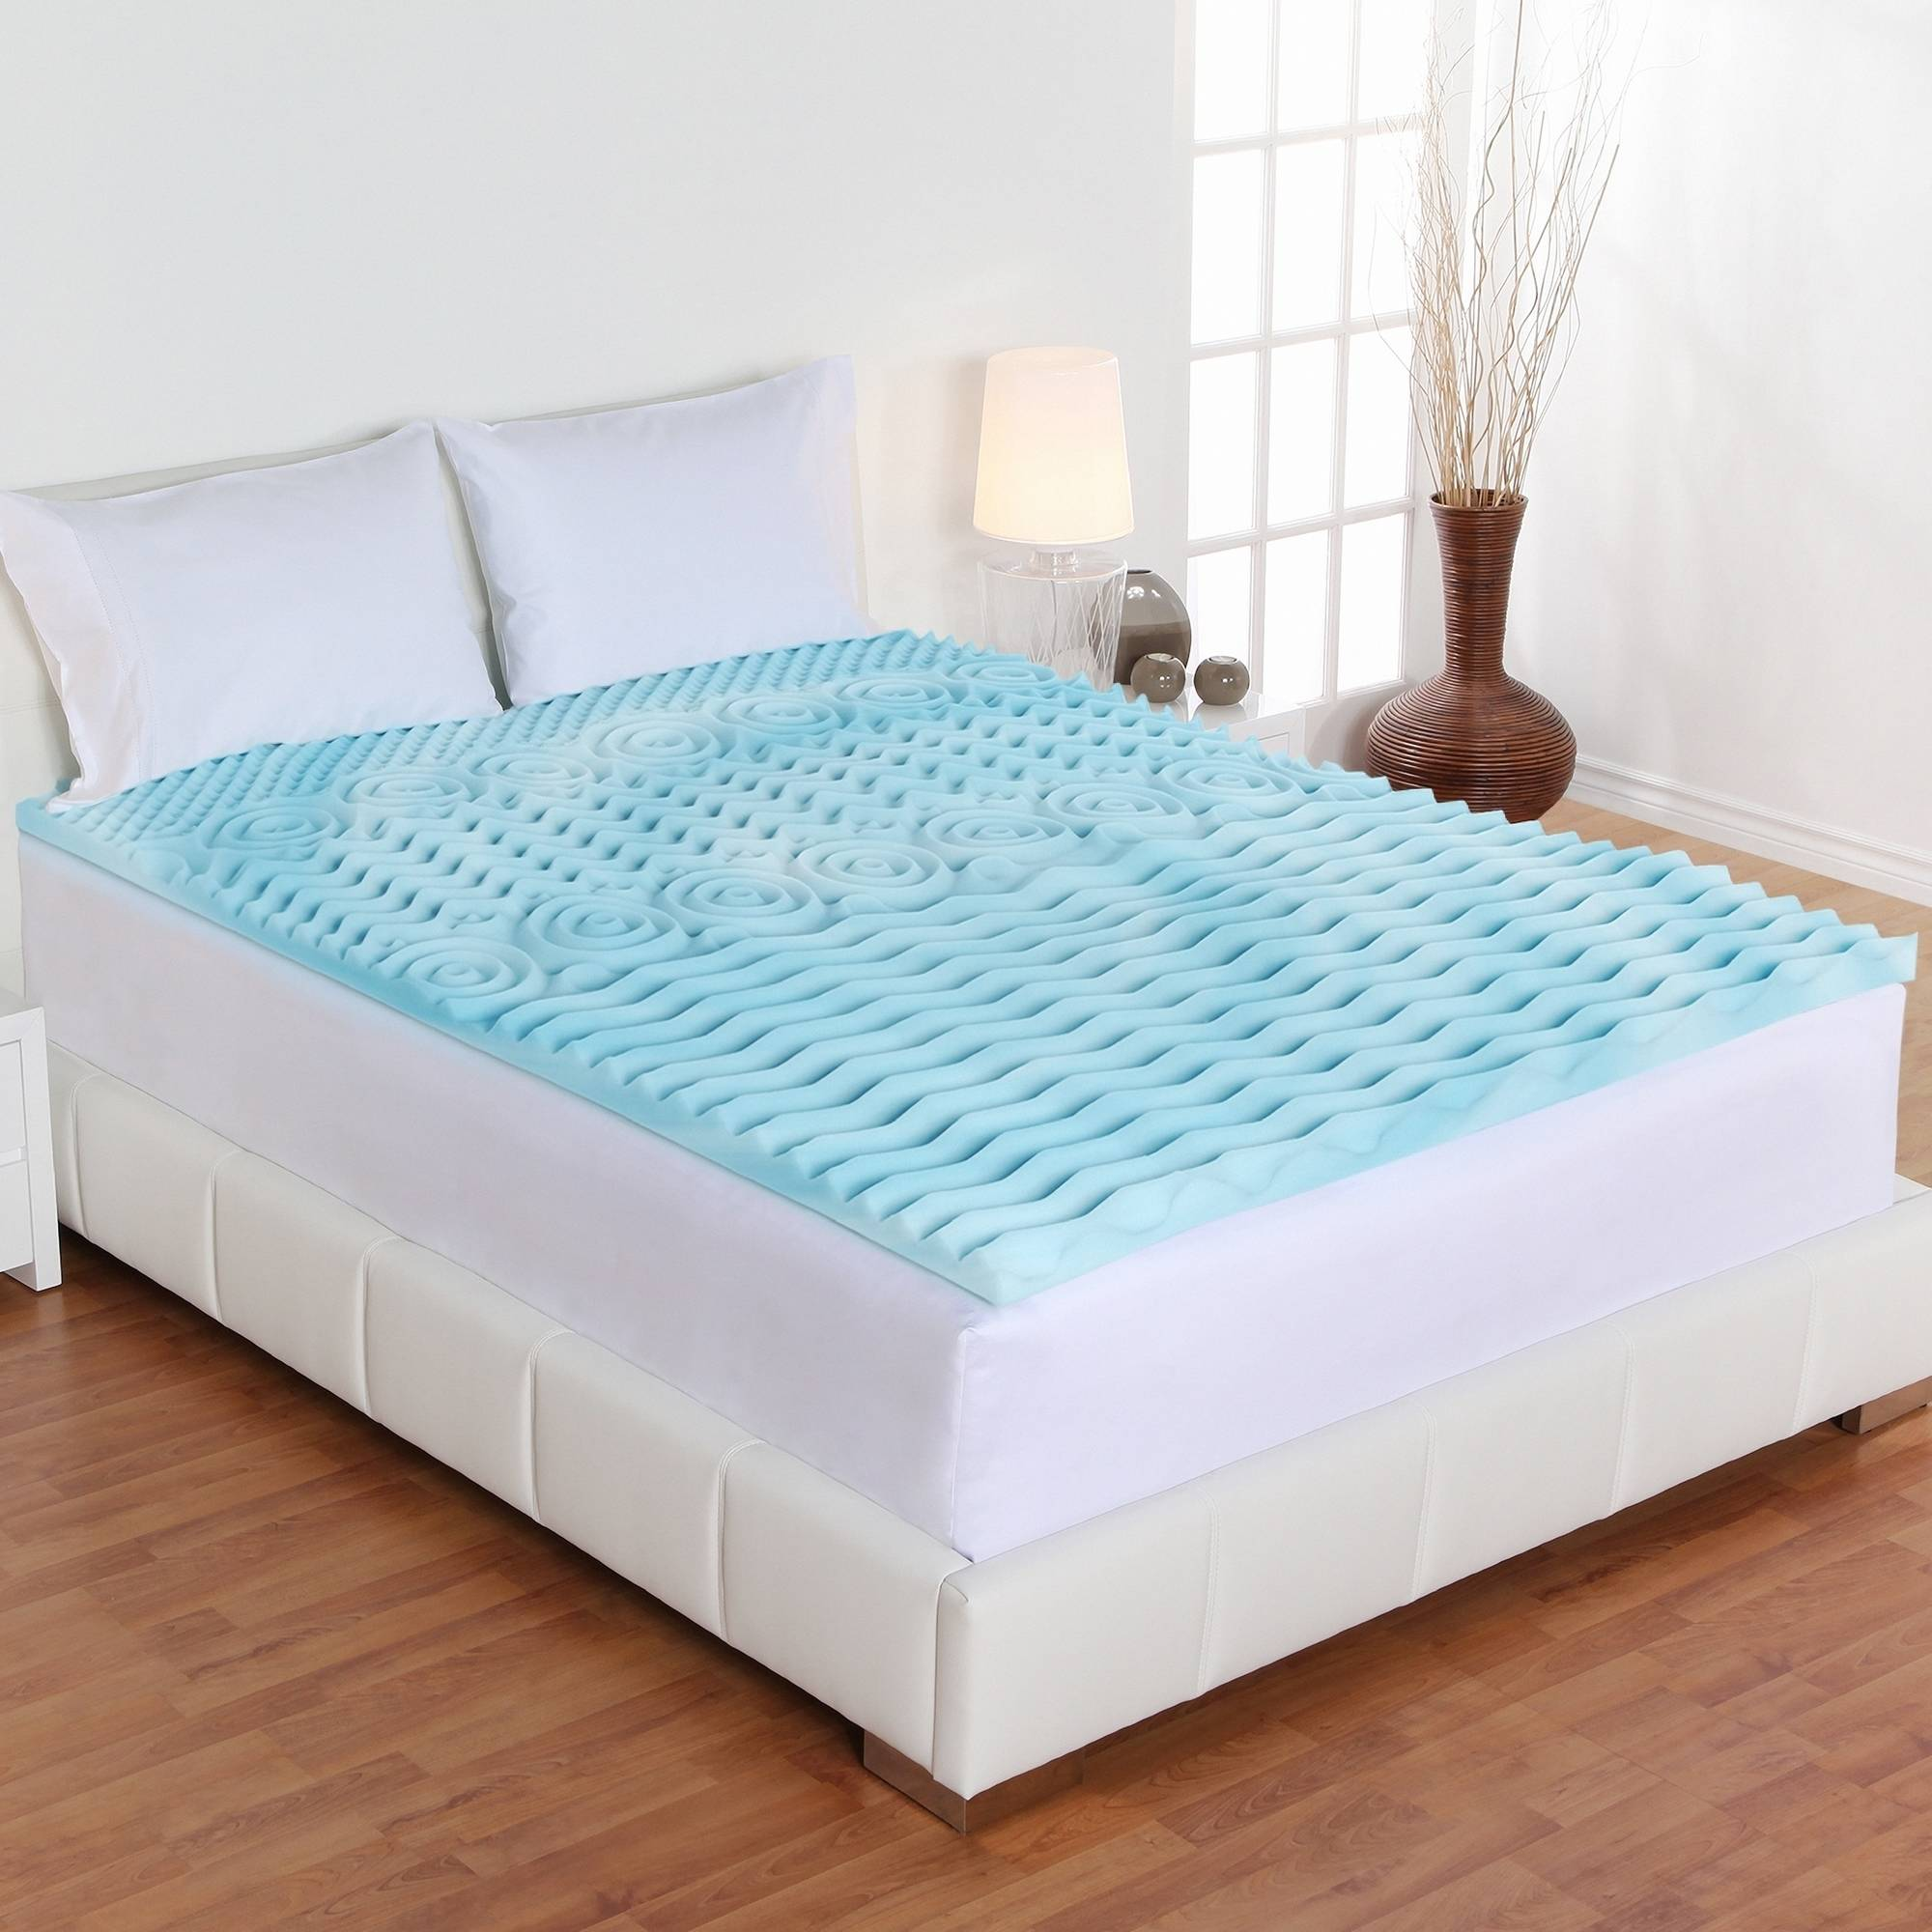 "Comfort Rx 3"" Orthopedic Foam Mattress Topper, Multiple Sizes"